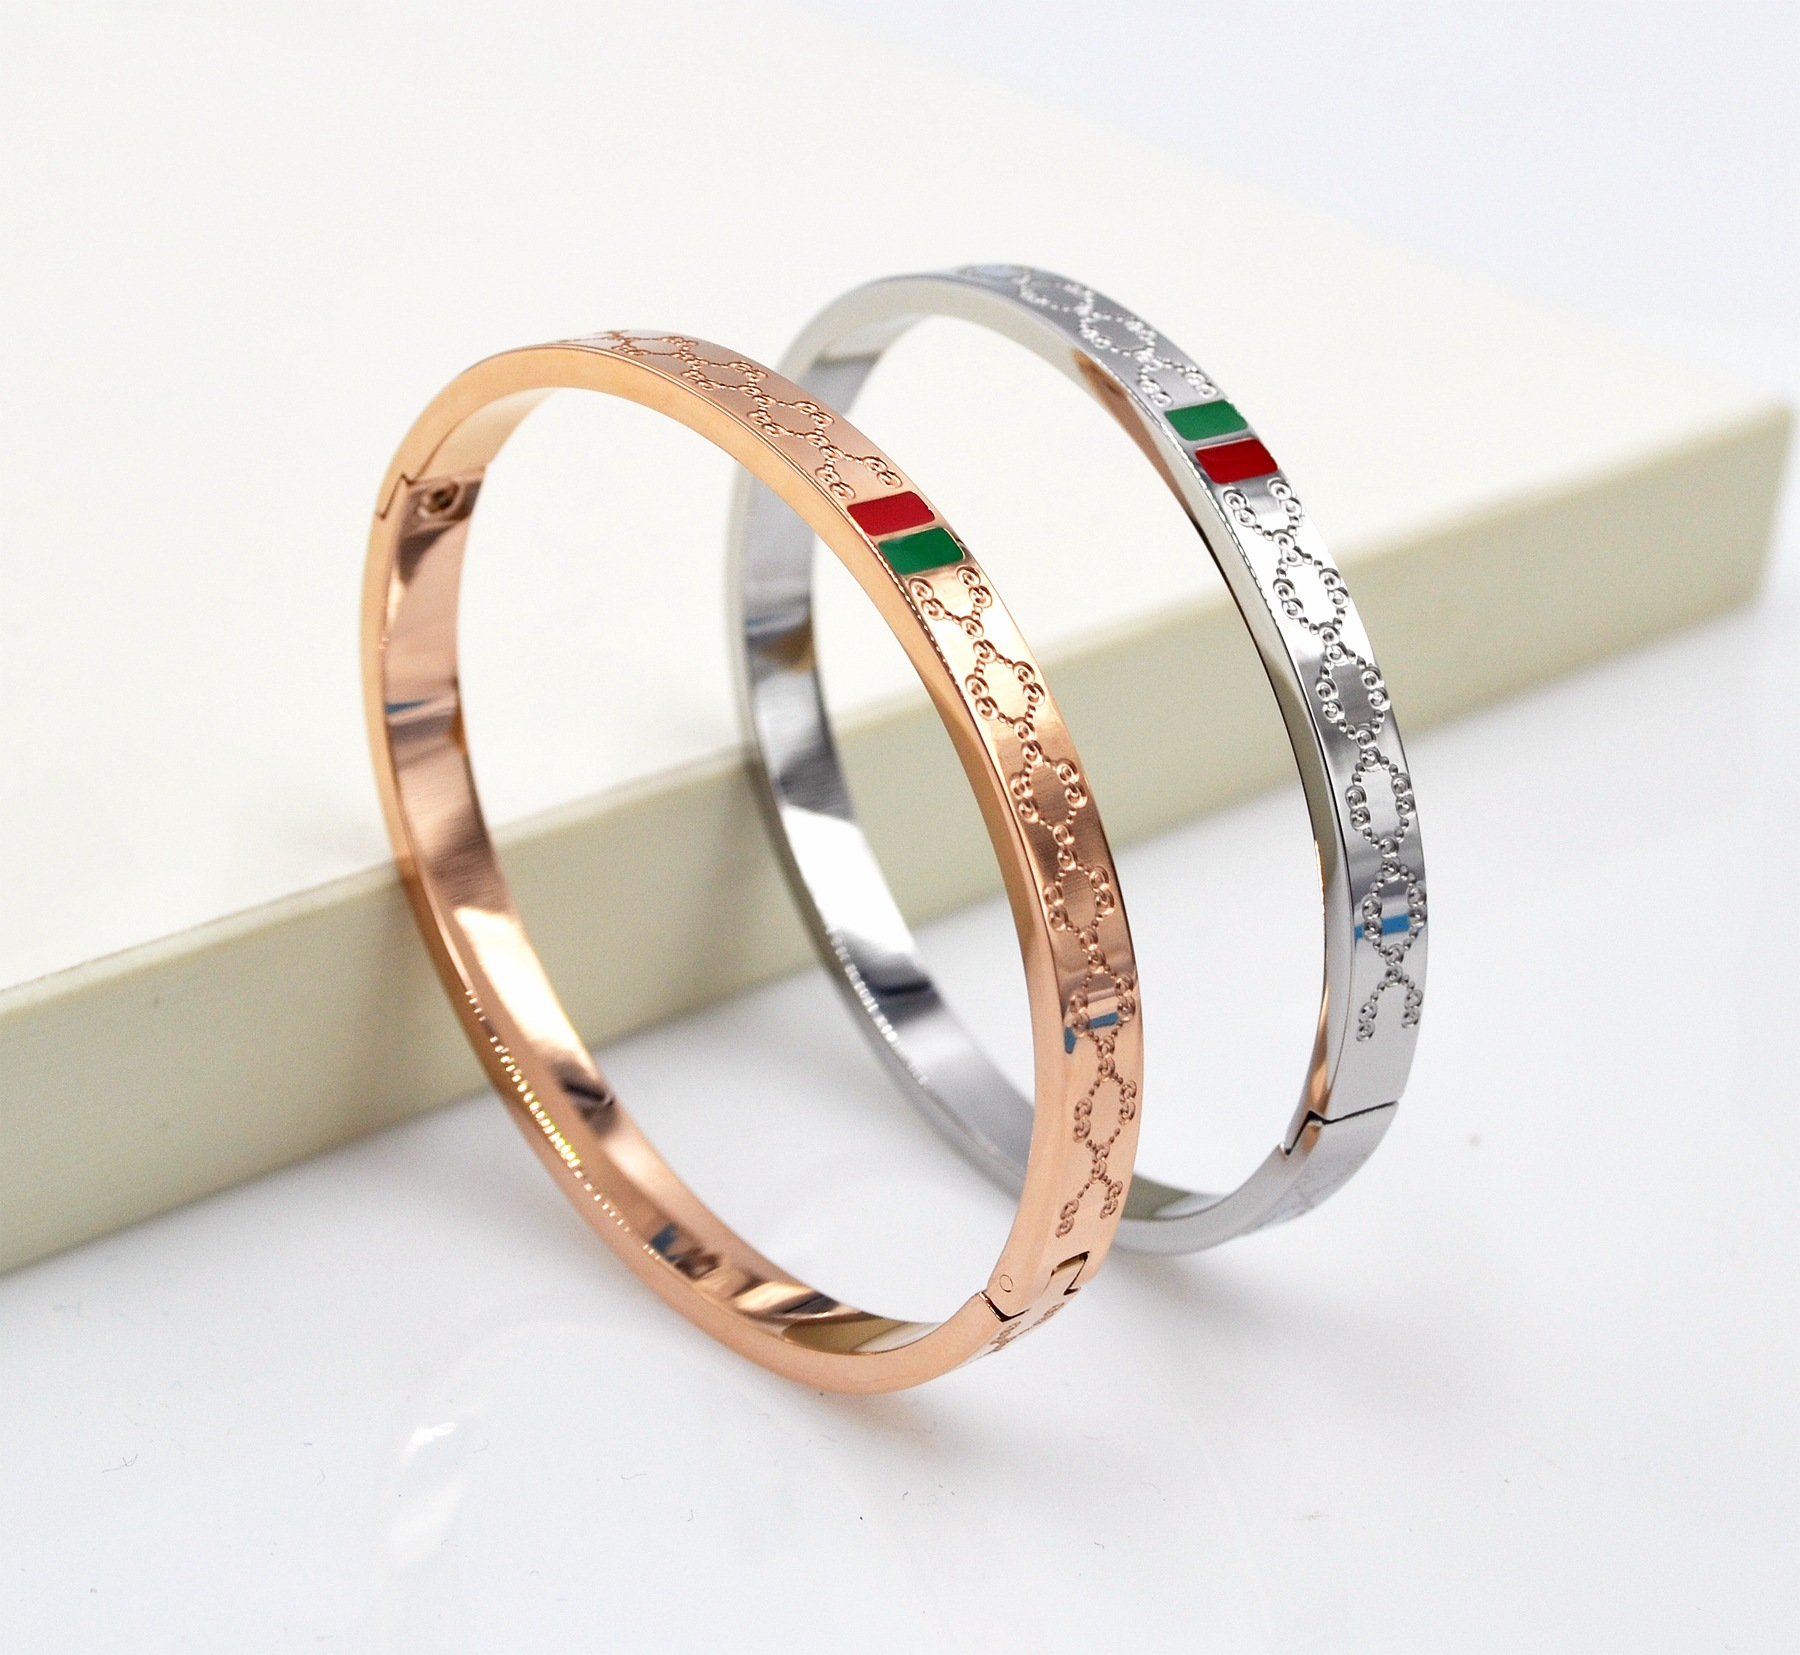 A Korean version of the G steel rose gold bracelet female models the new high quality wholesale selling special offer exquisite 2015 special offer bolsas designer handbags high quality korean manufacturers selling new are cross printed student bag cheap